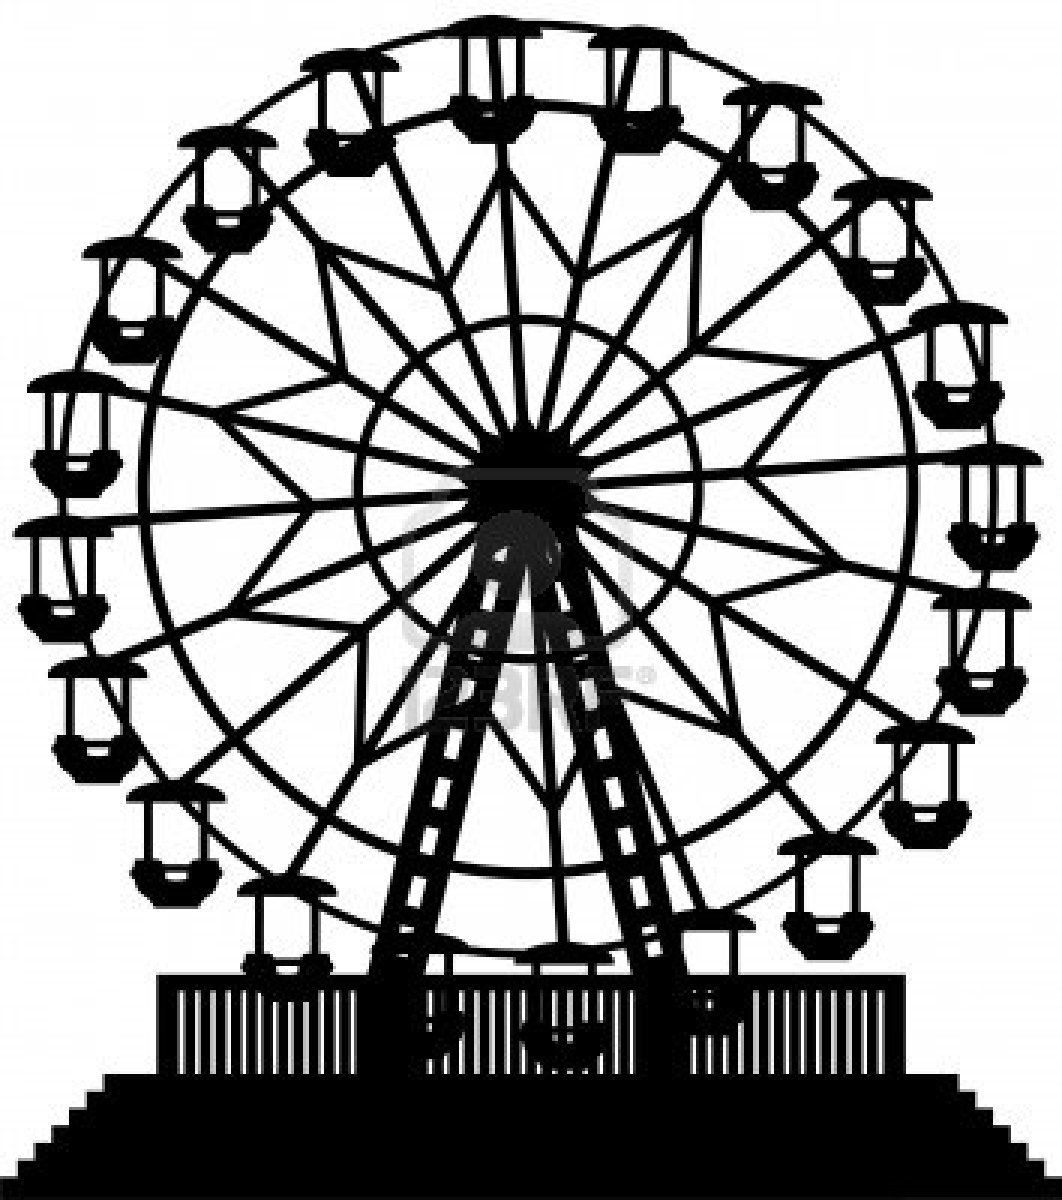 A Cartoon Silhouette Of A Ferris Wheel At An Amusement Park Cartoon Silhouette Silhouette Painting Stock Illustration